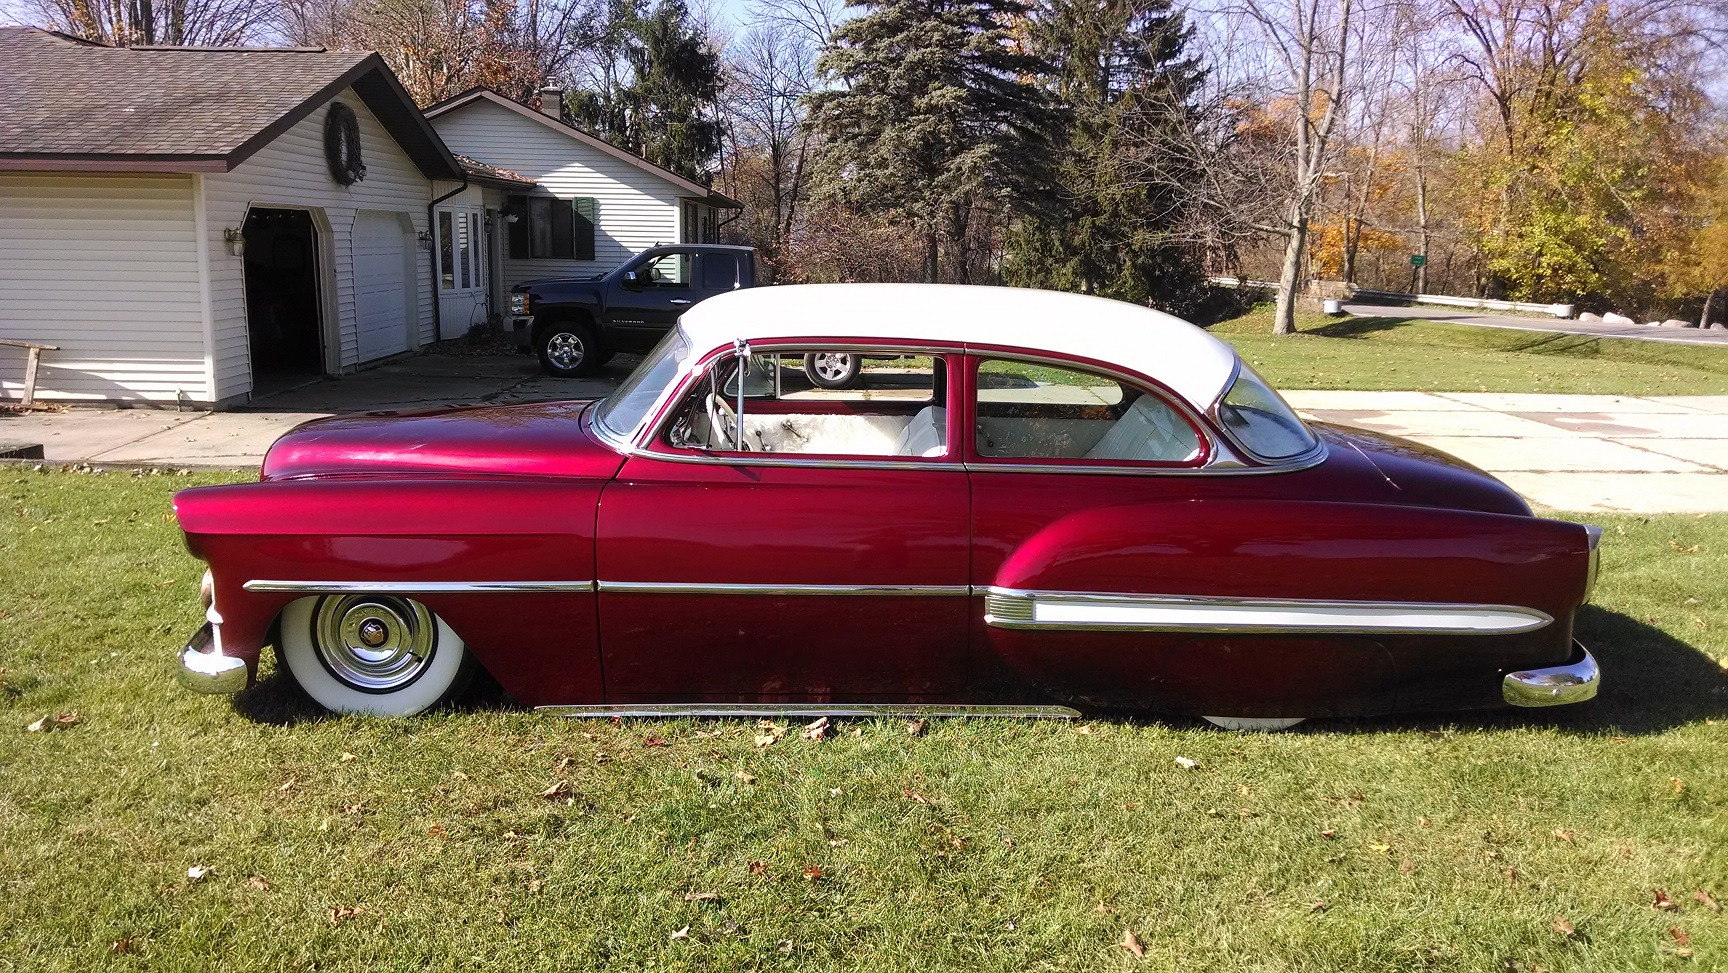 1953 Chevy Bel Air Mild Custom, Bagged, Candy PRICE DROP 17500 | The H.A.M.B.